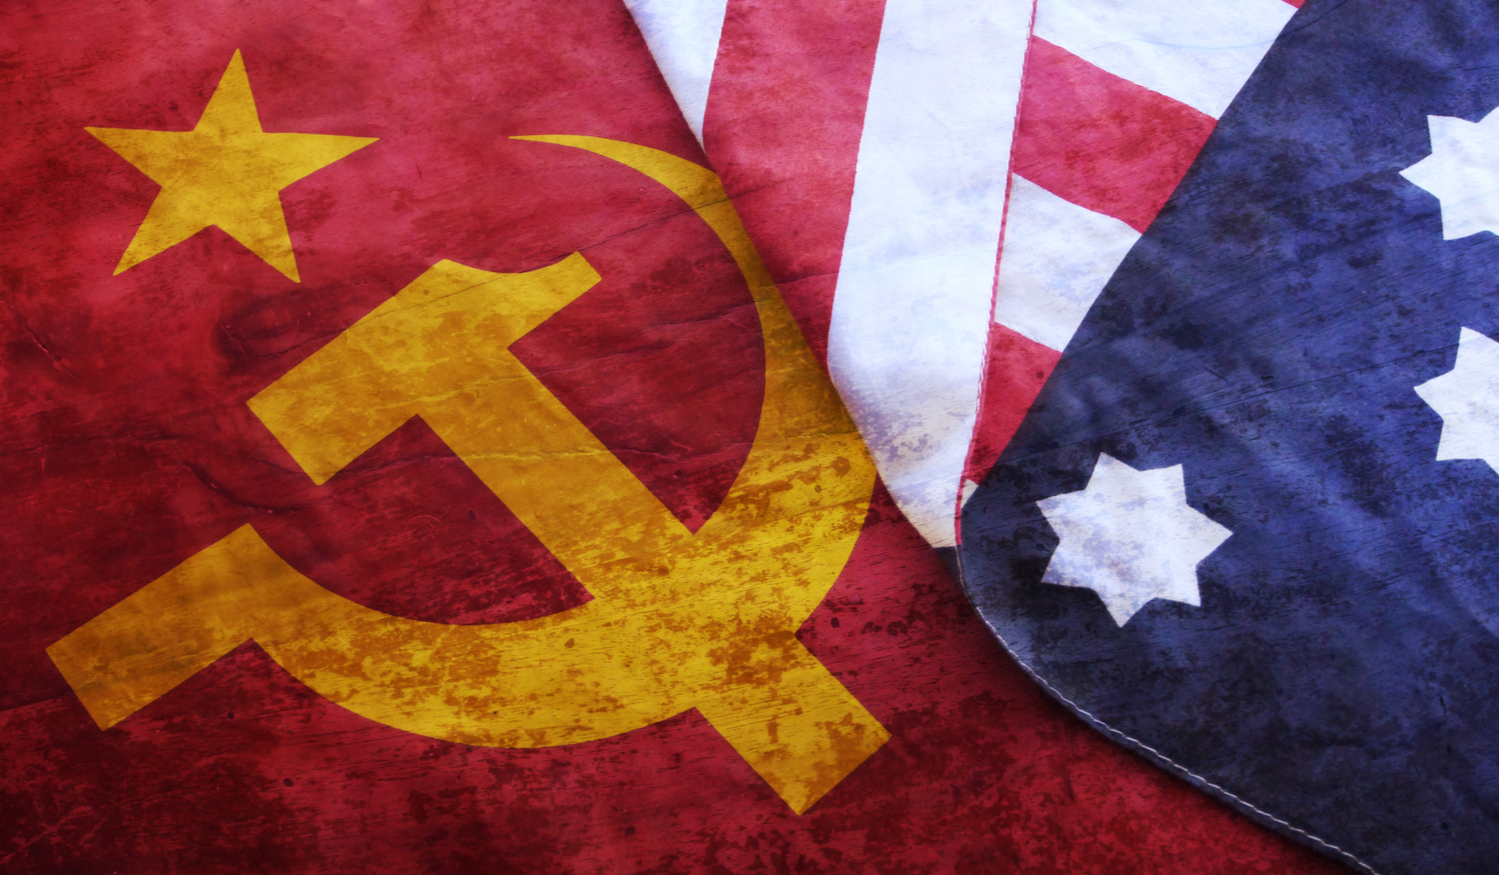 American and Soviet flag